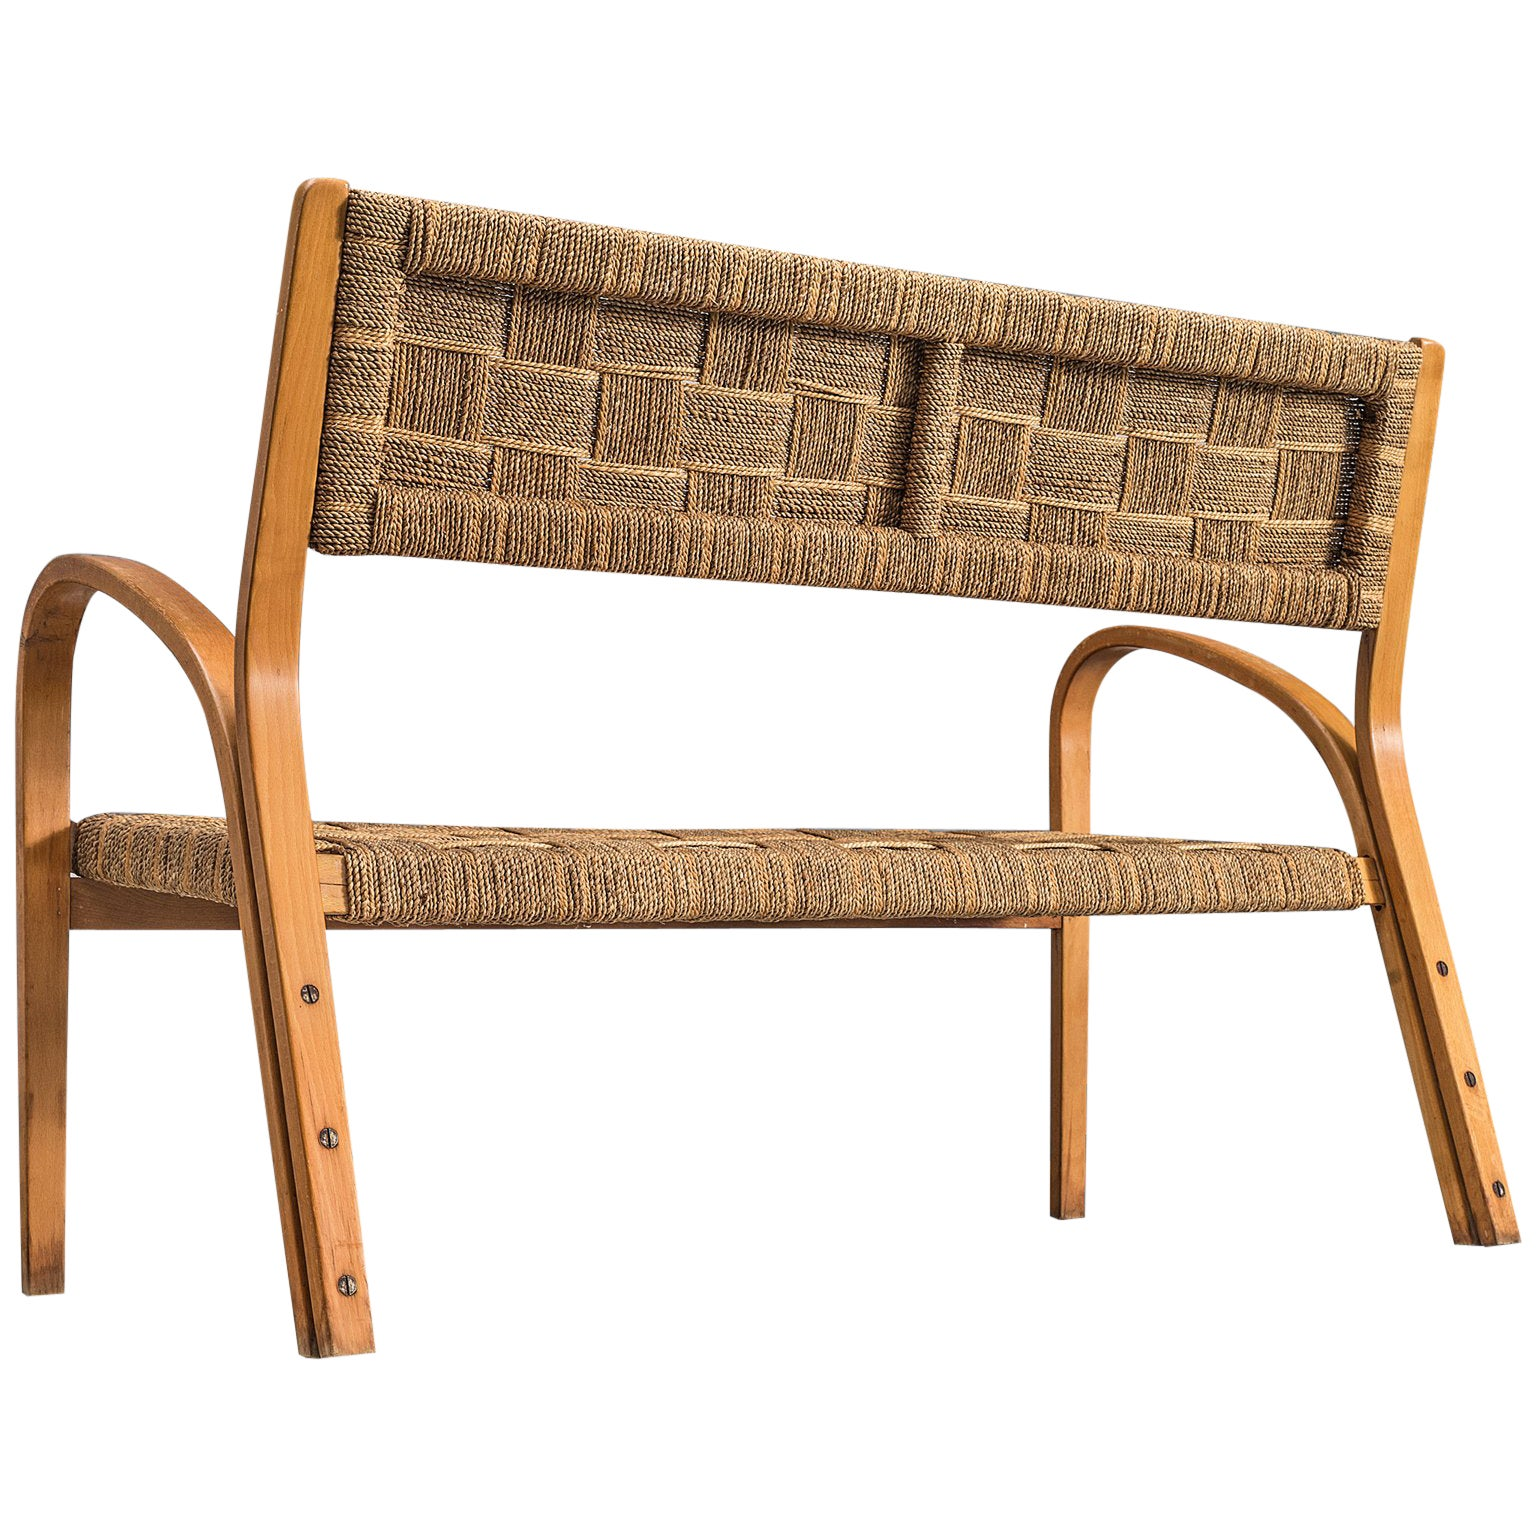 Giuseppe Pagano Attributed Roped Sofa, 1940s